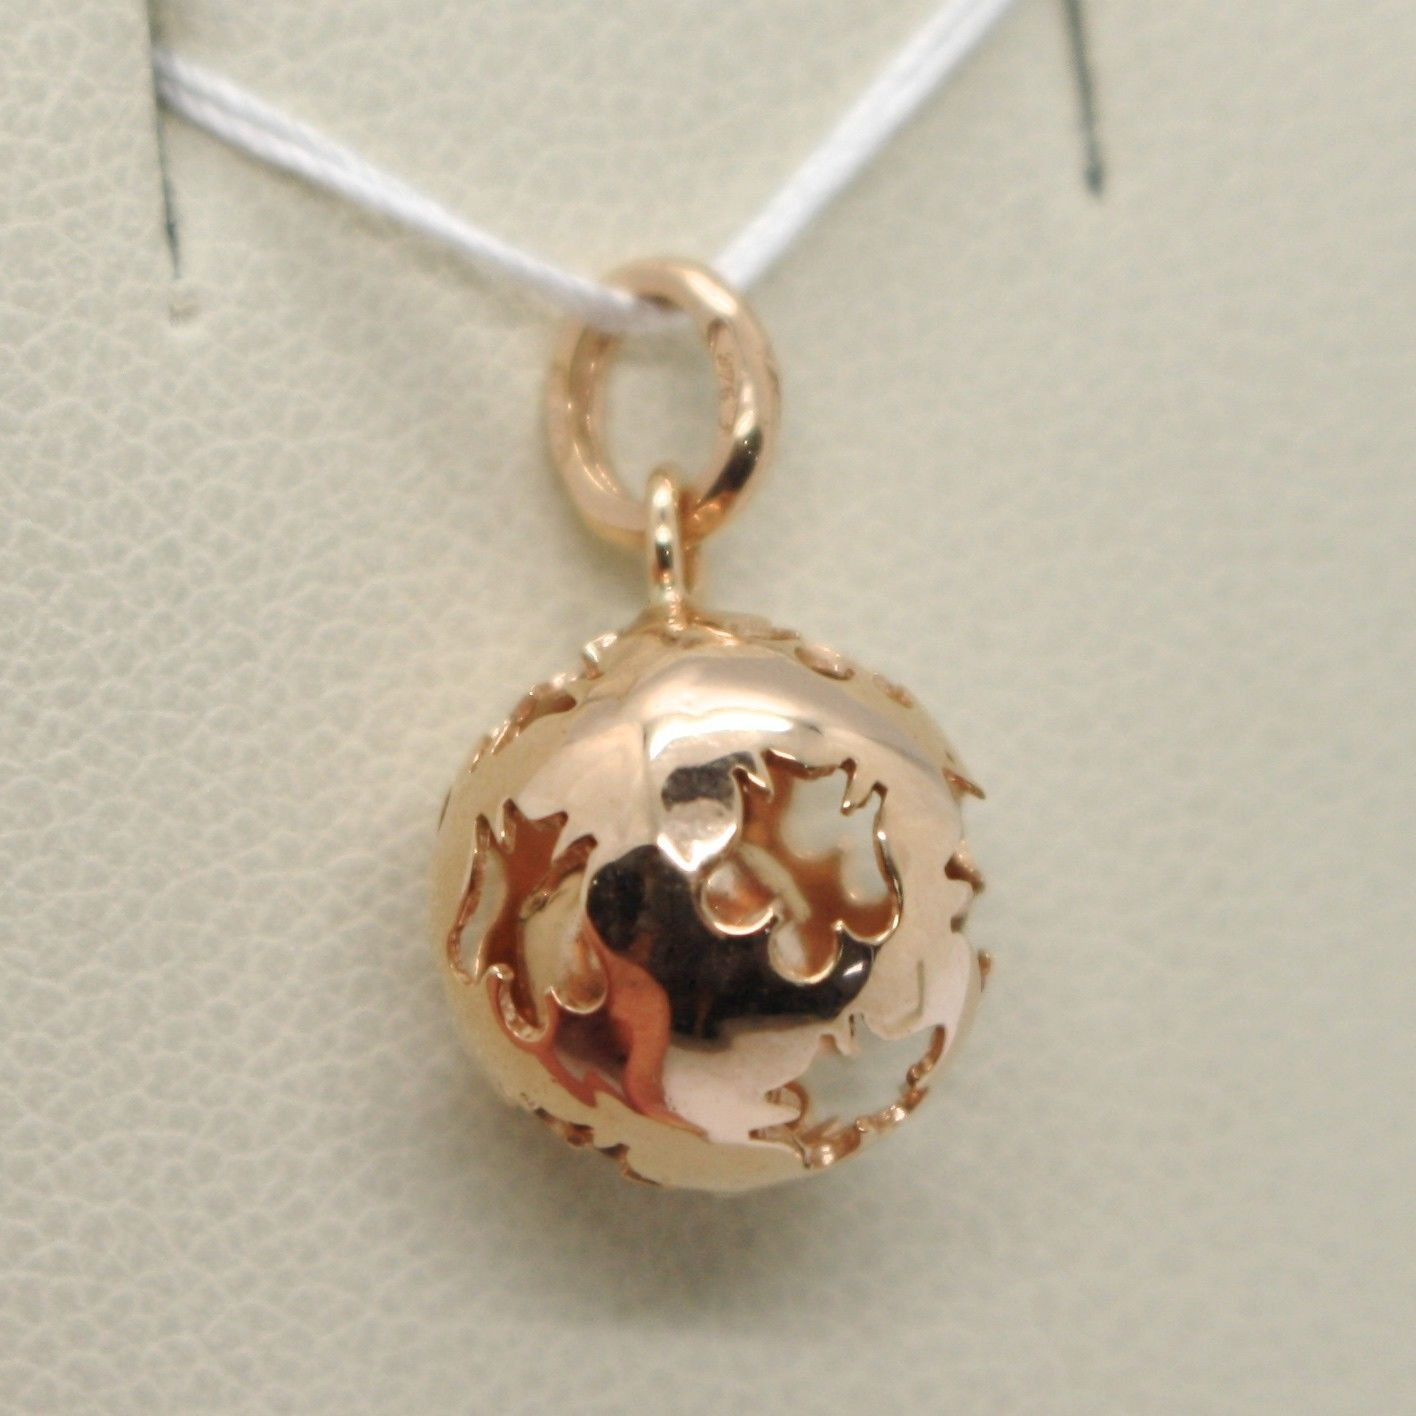 PENDANT GOLD PINK 9K, MEXICAN BOLA, WITH CORD, ROBERTO GIANNOTTI, NKT110